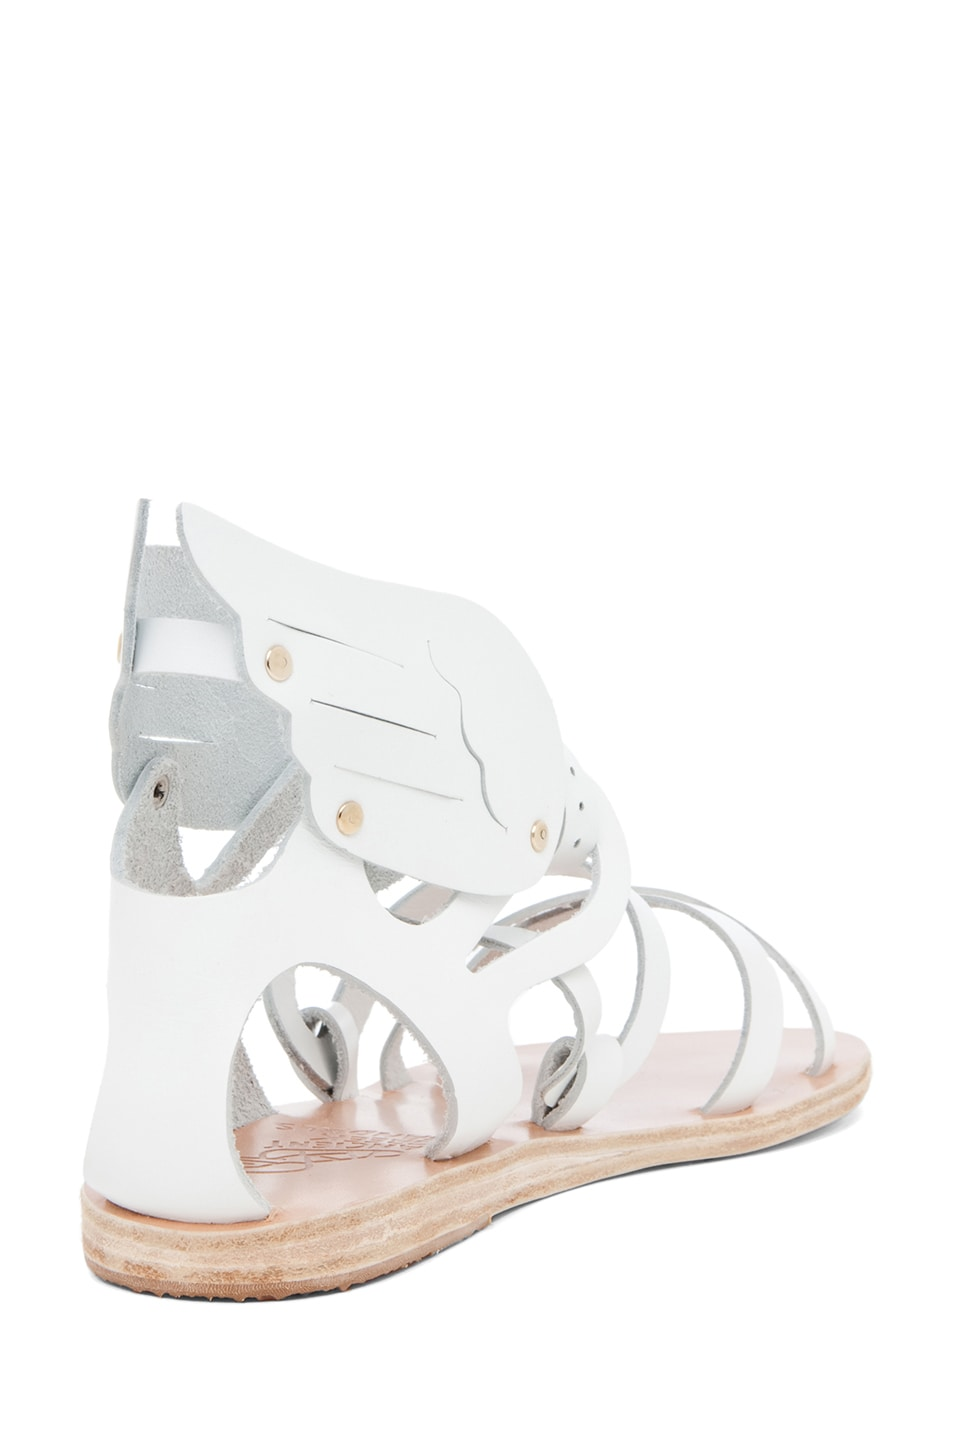 Image 3 of Ancient Greek Sandals Nephele Calfskin Leather Sandals in White